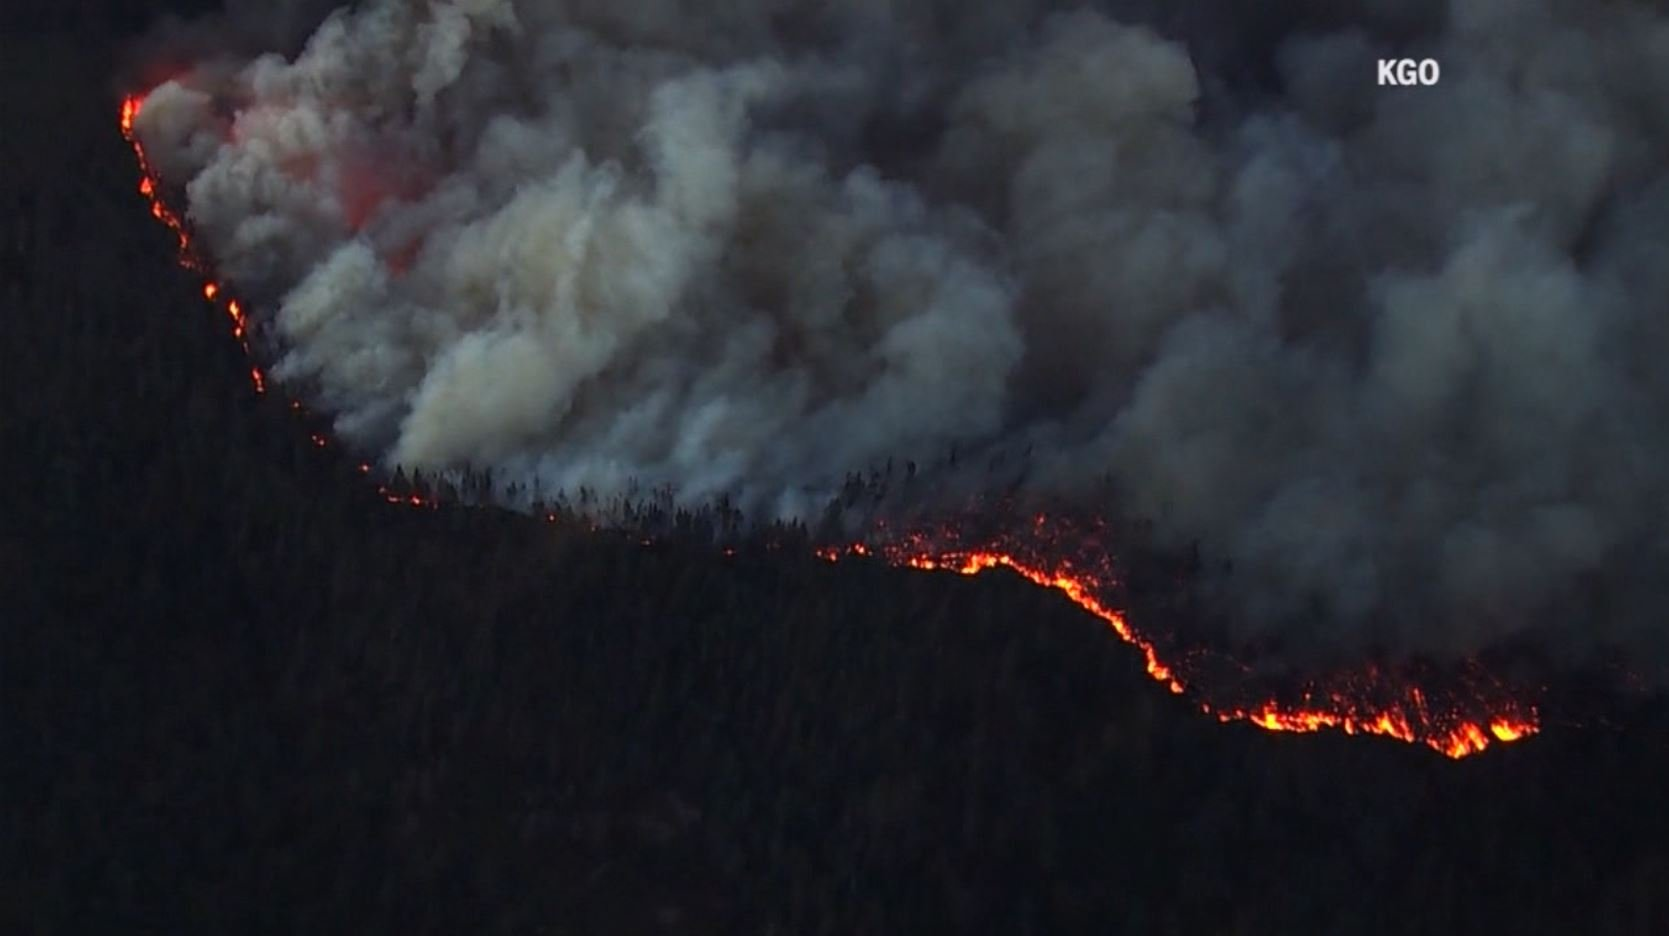 Wildfire smoke can be dangerous to your health